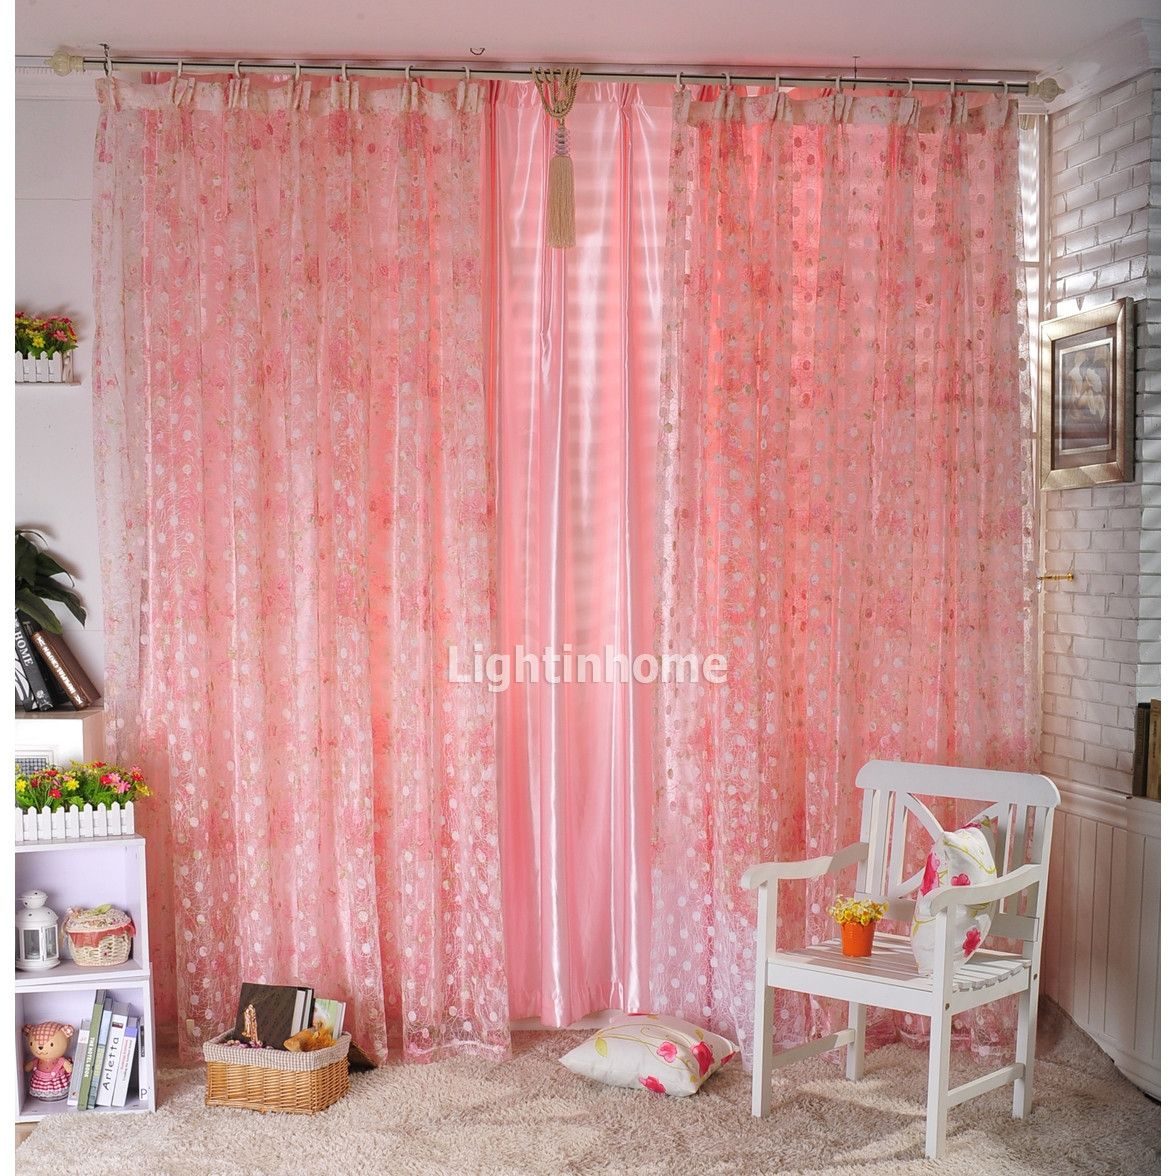 Pink bedroom curtain design - Sweet Bedroom Designs With Pink Curtain For Girls Gorgeous White Bedroom With Peach Pink Floral